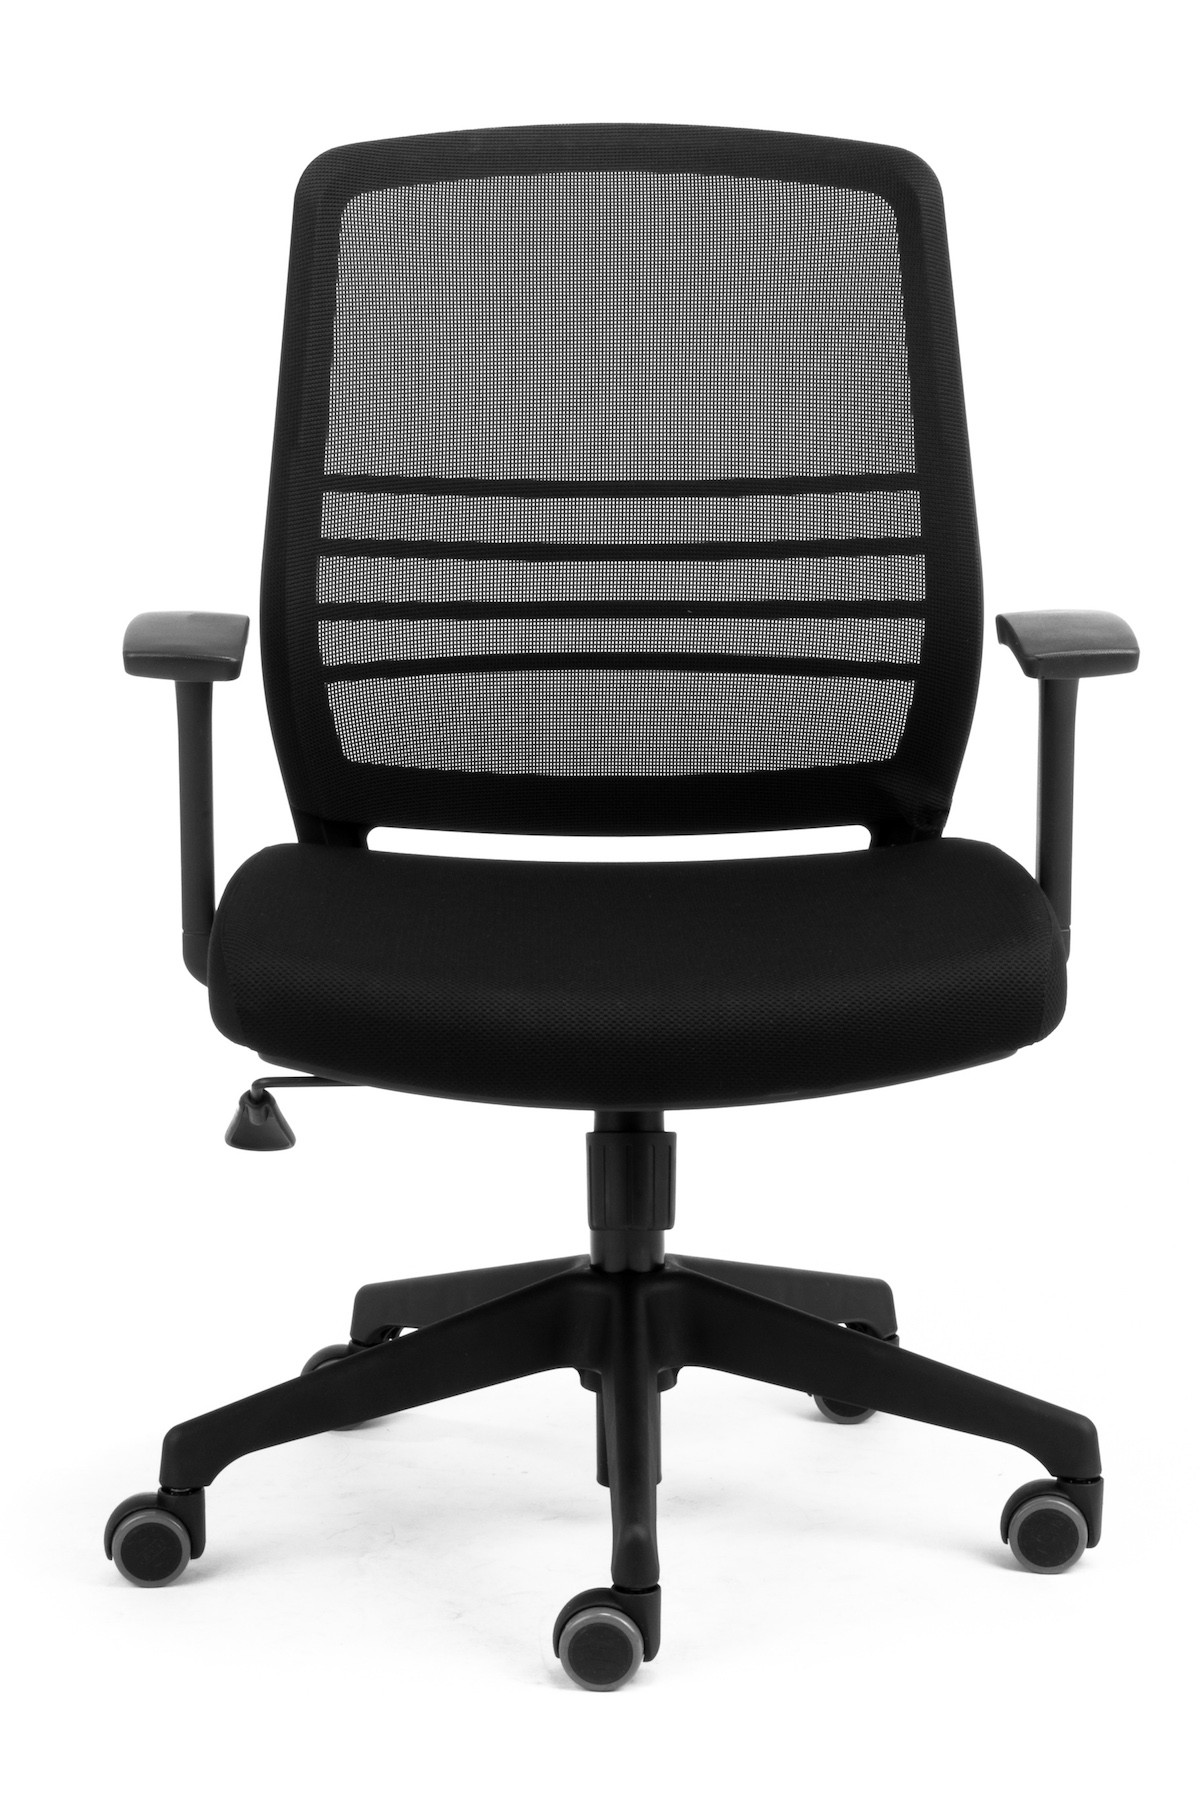 Cobi Mesh Chair Black Office Furniture Desk Chairs Task